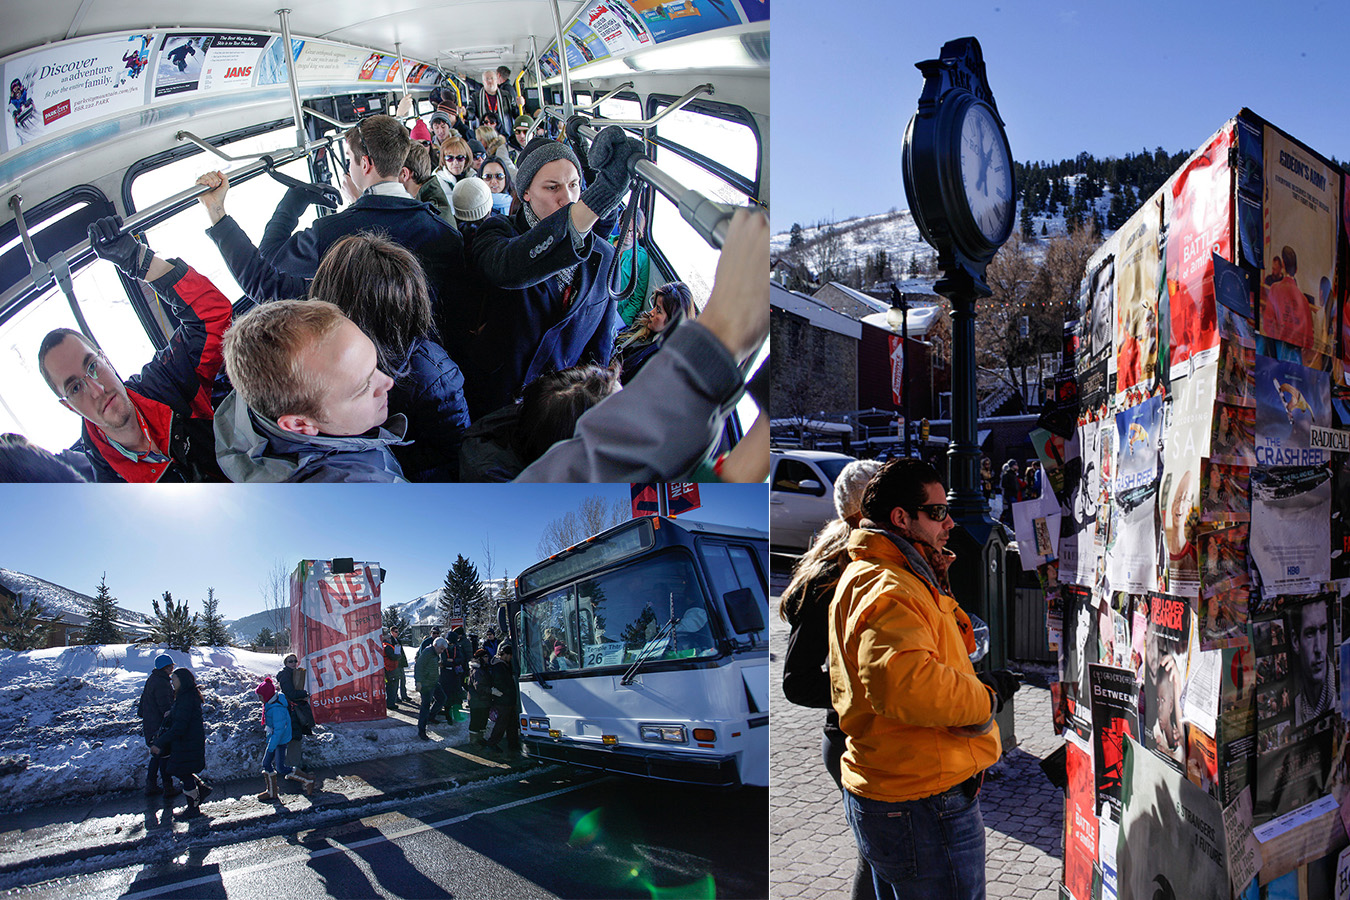 Sundance atmosphere bus posters Event Coverage